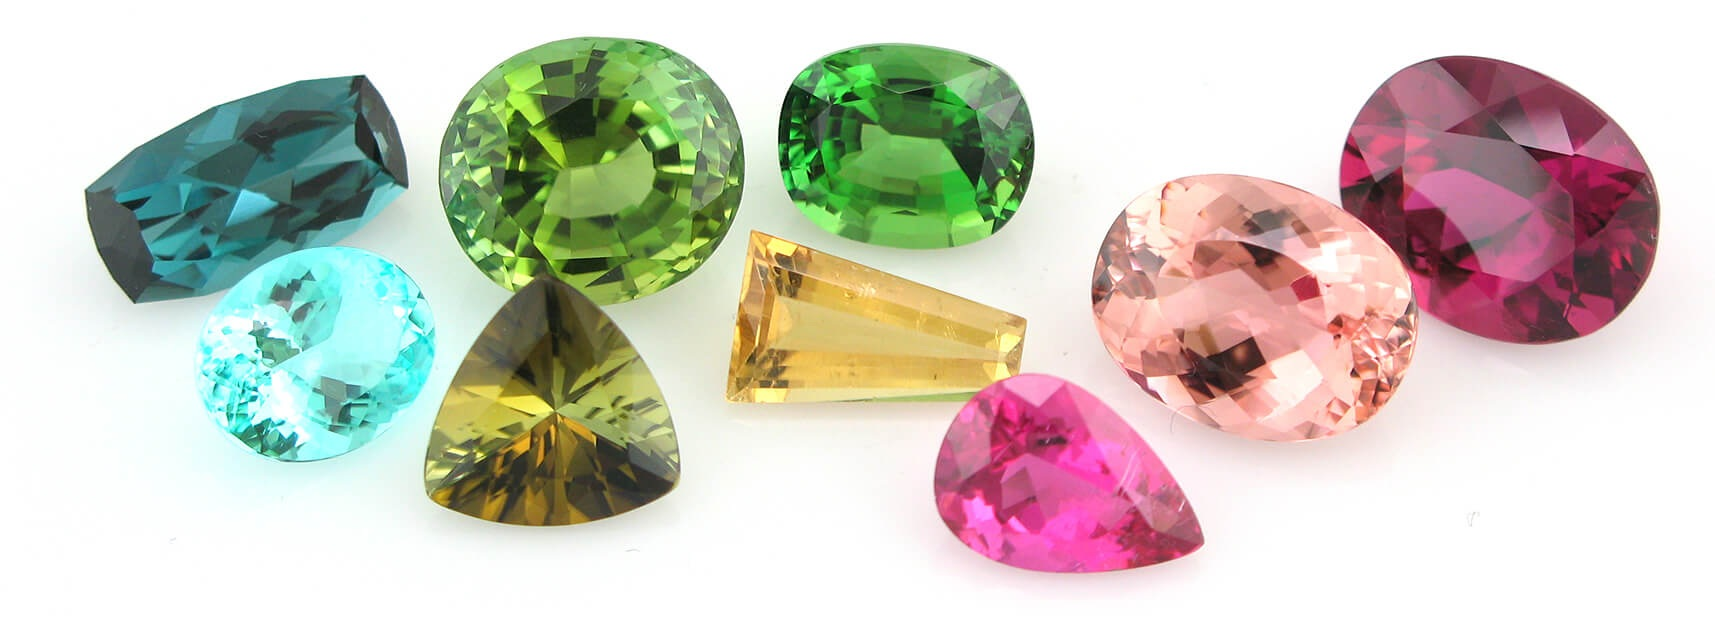 Loose-Gemstones-Hatton-Garden.jpg